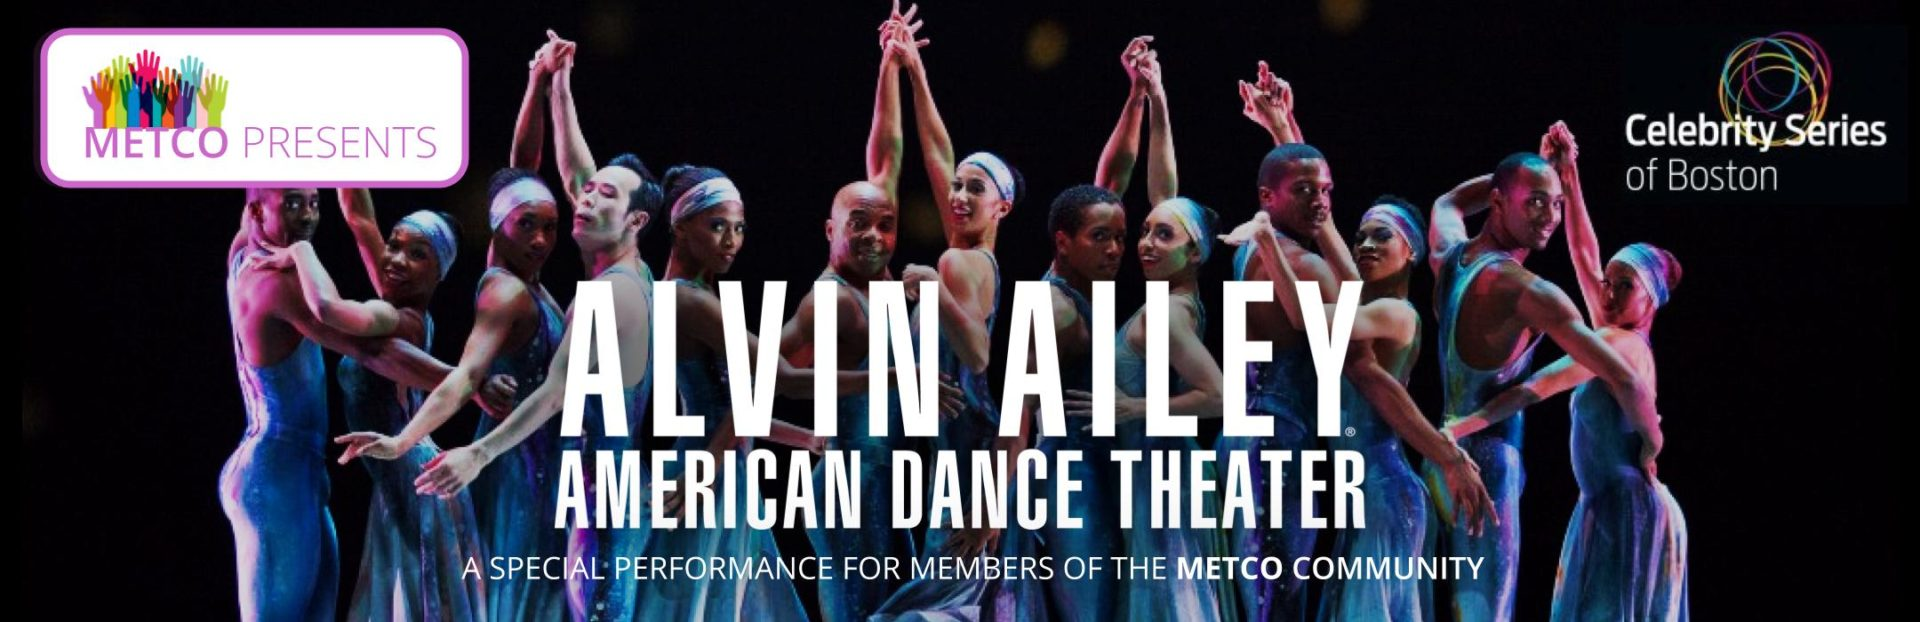 Alvin Ailey email banner - EDITABLE